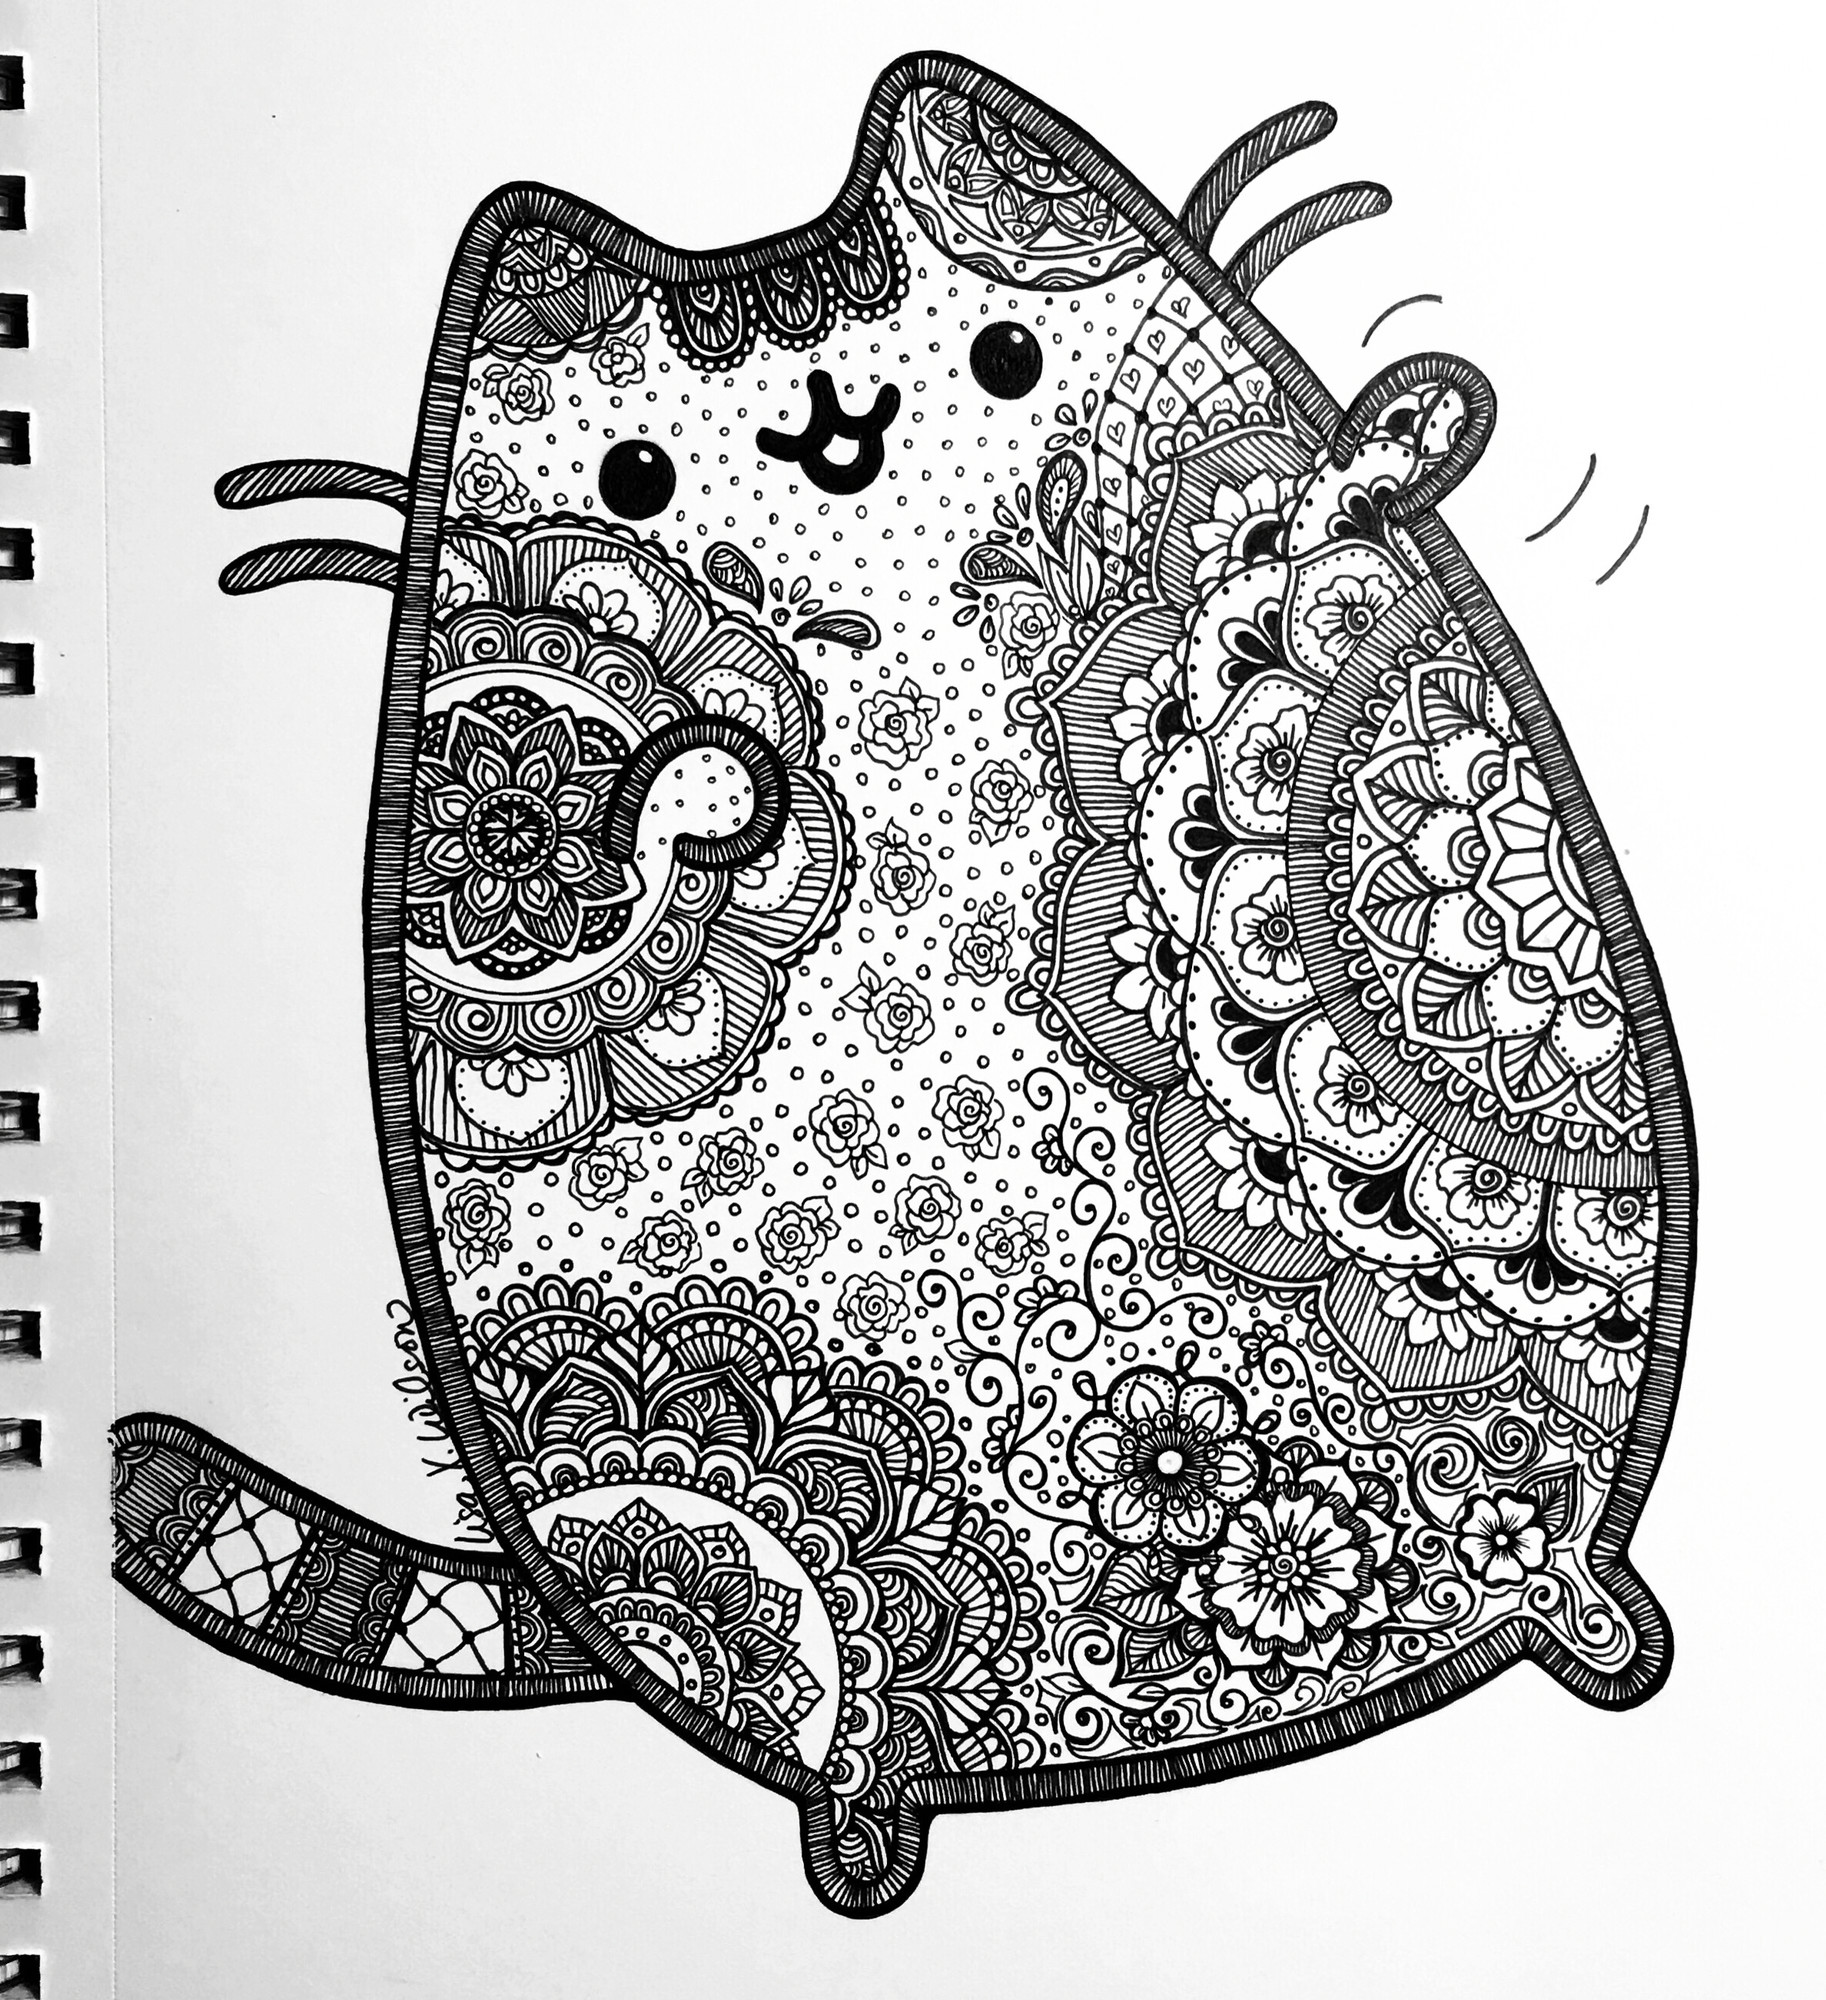 hard cute cat coloring pages collection of cute cat coloring pages stpetefestorg coloring hard cat pages cute